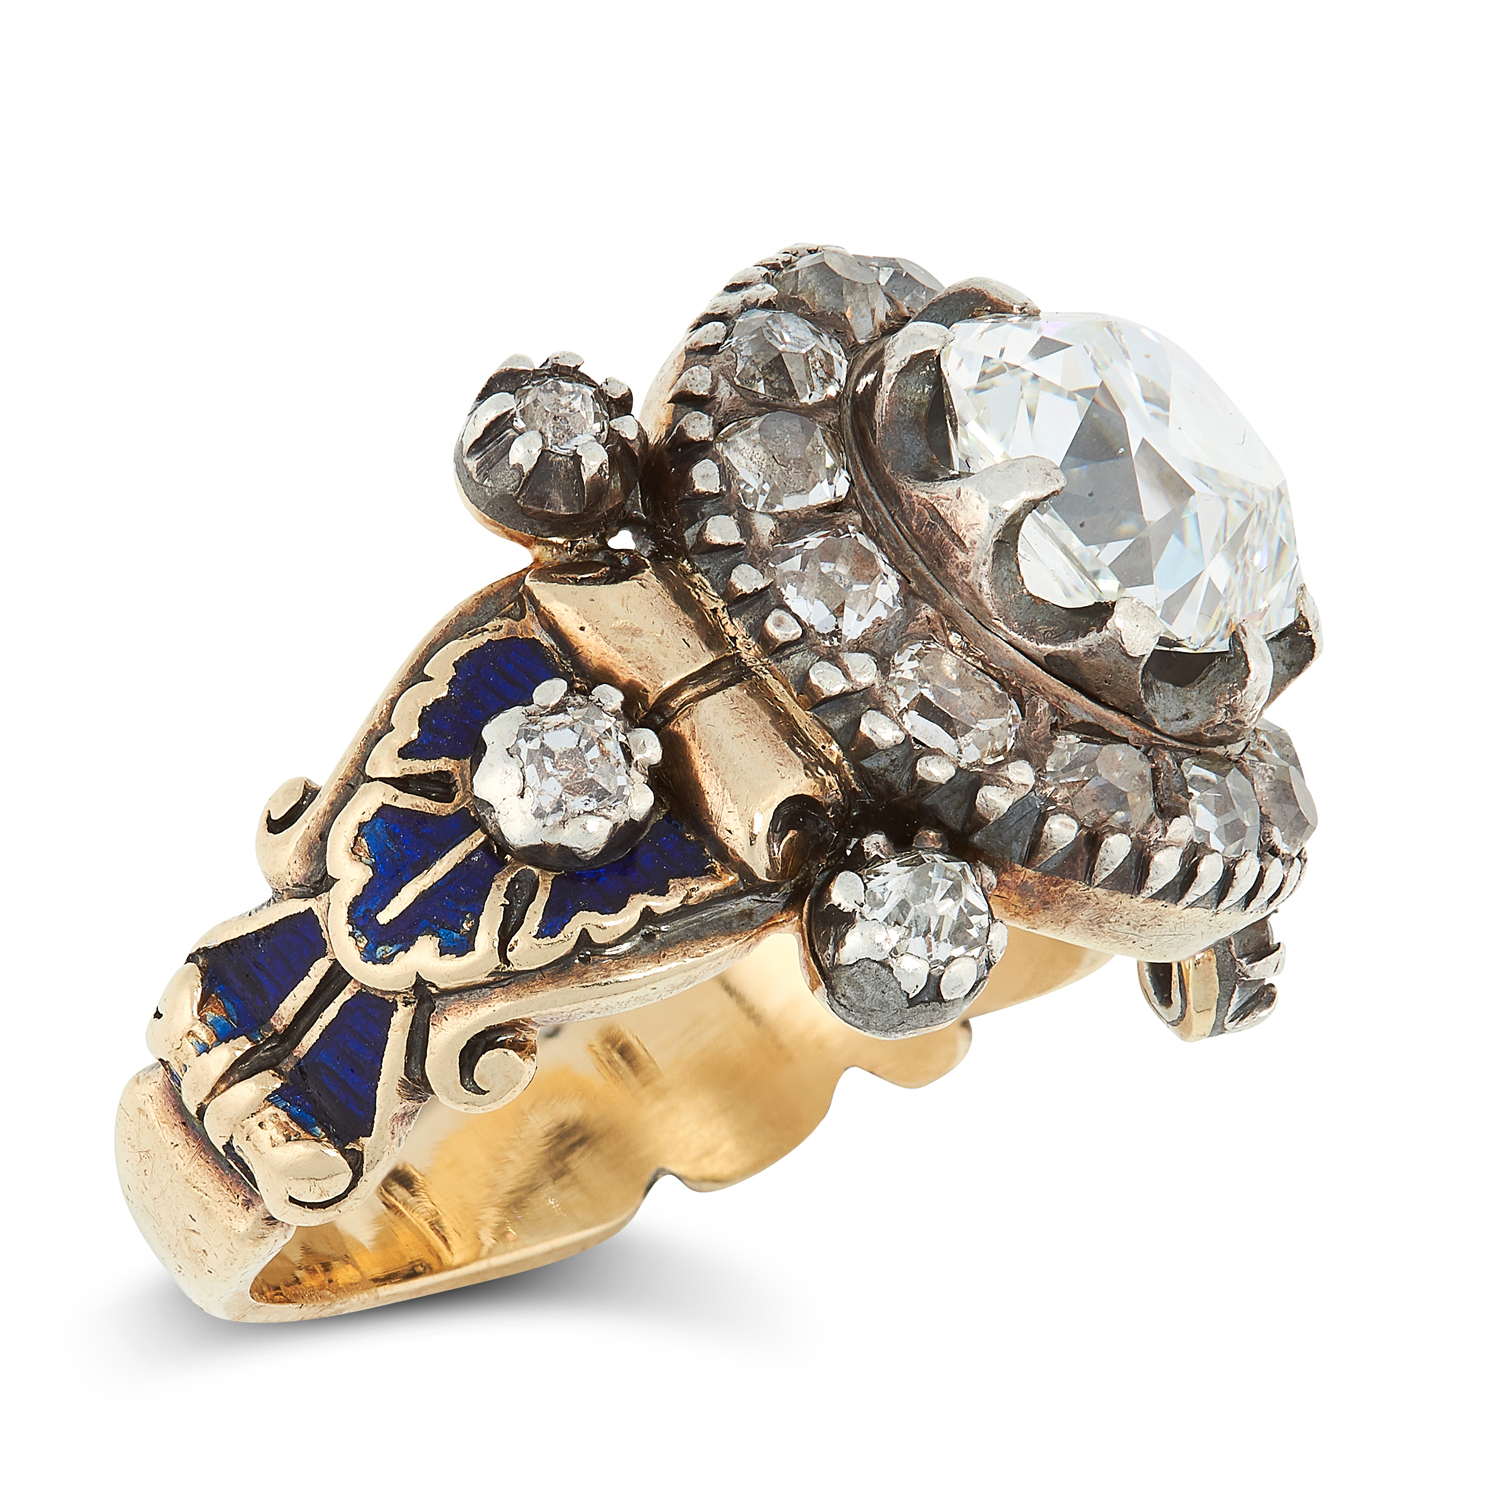 AN ANTIQUE DIAMOND AND ENAMEL RING, 19TH CENTURY in high carat yellow gold and silver, set with an - Image 2 of 2